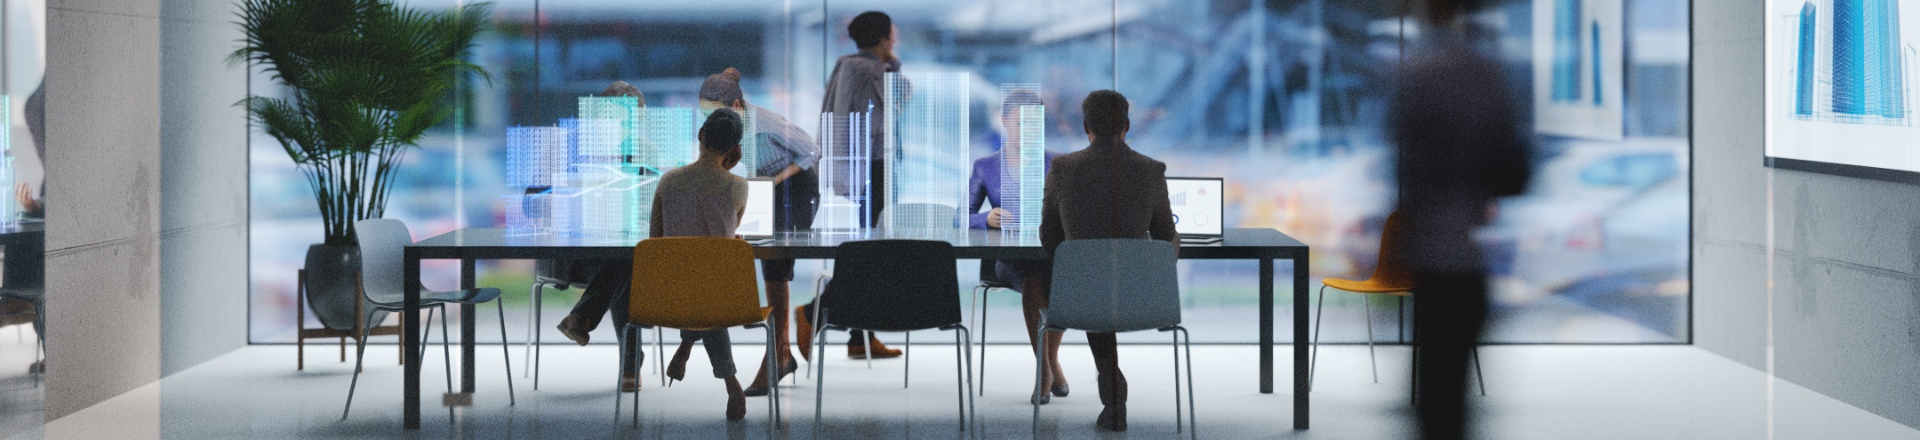 People collaborating in a boardroom